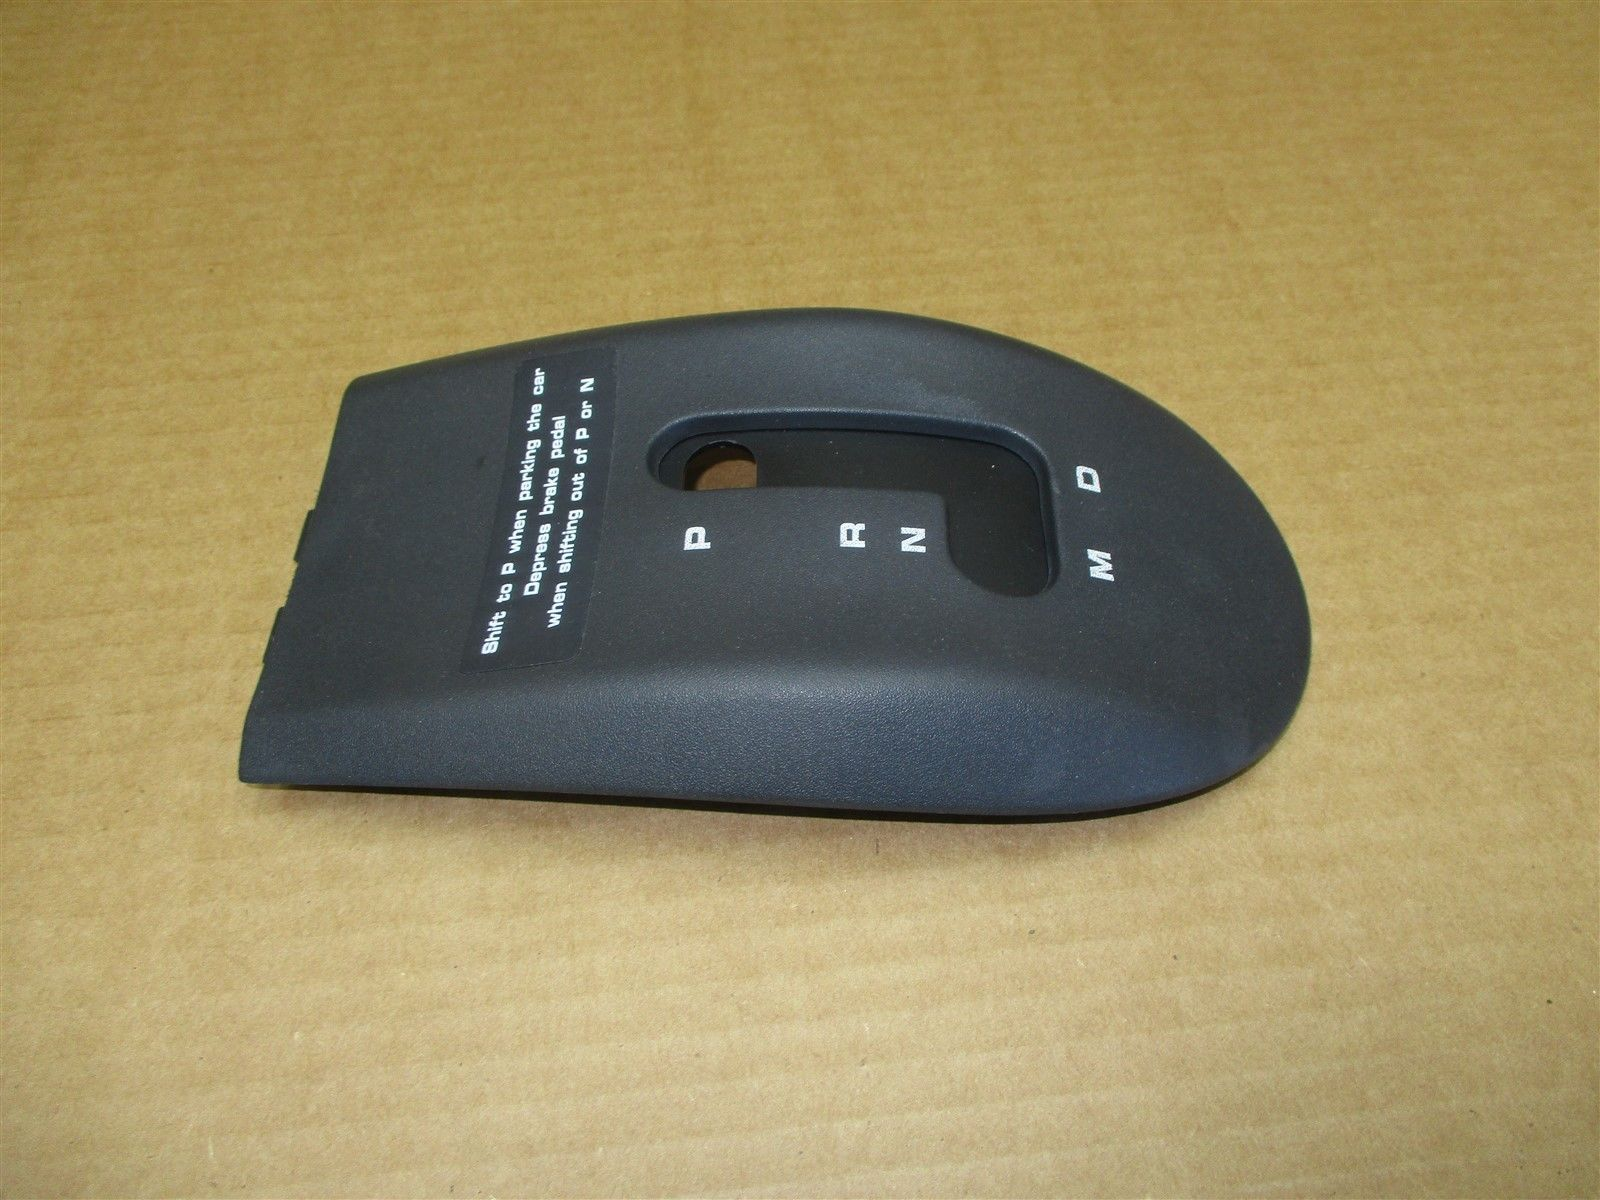 97 Boxster RWD Porsche 986 SHIFT KNOB TRIM COVER 996552657Z0 86,505